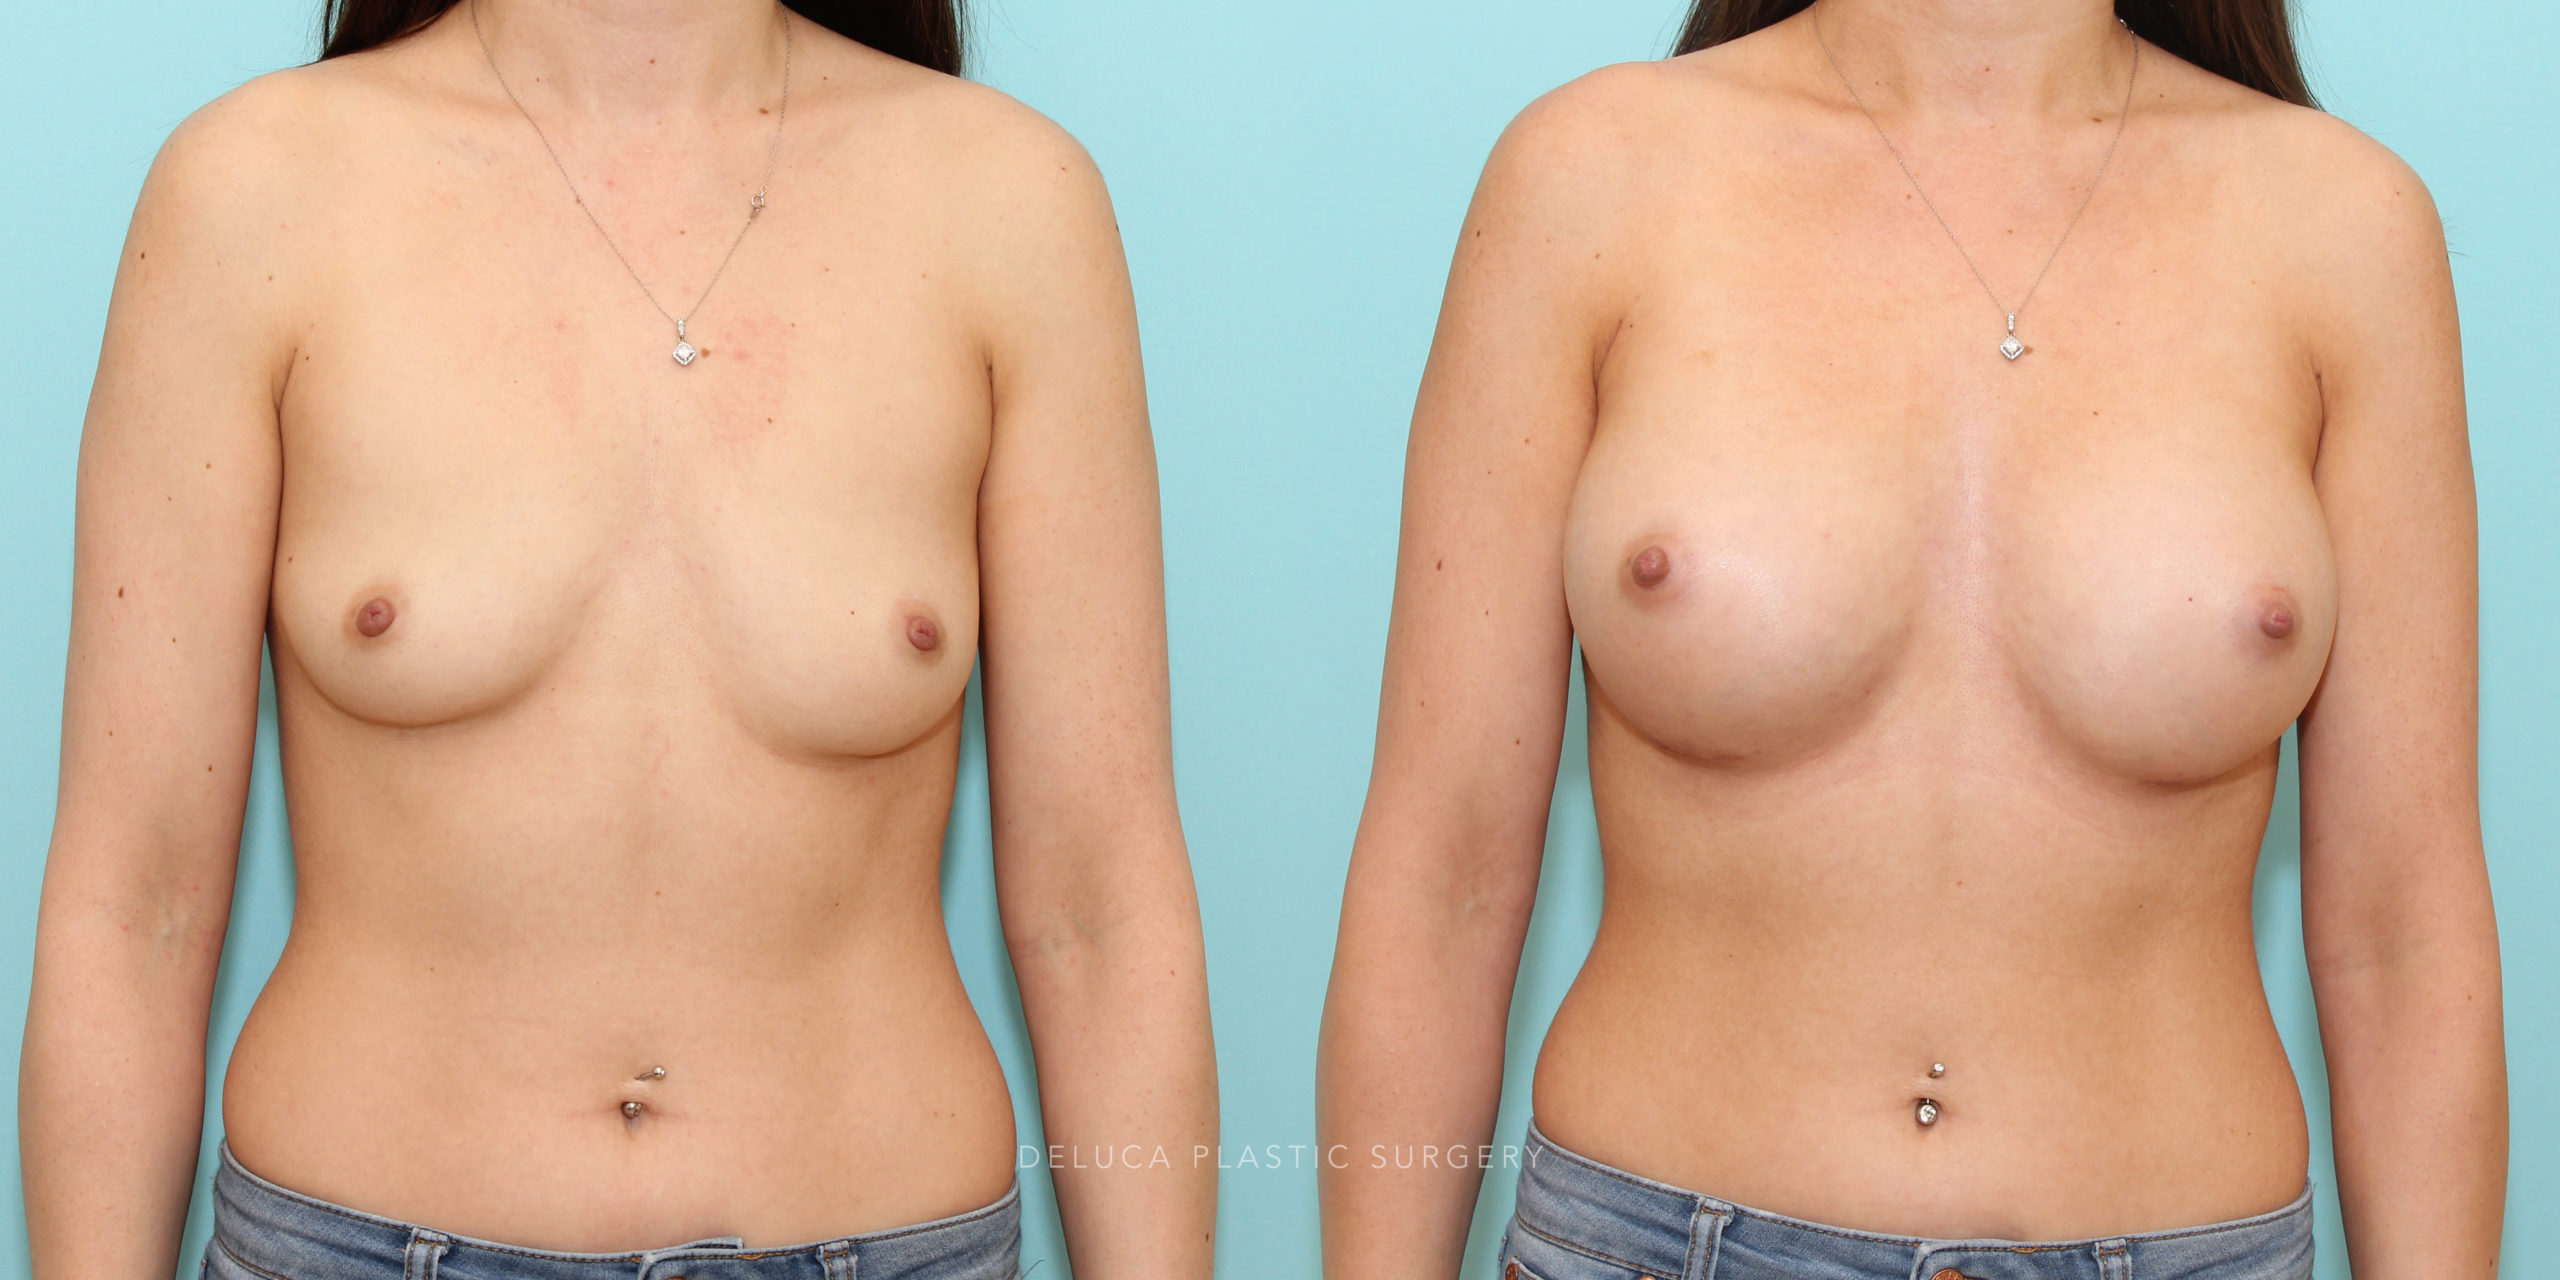 29 y/o Asymmetric Dual Plane Augmentation 300/350 MP Silicone